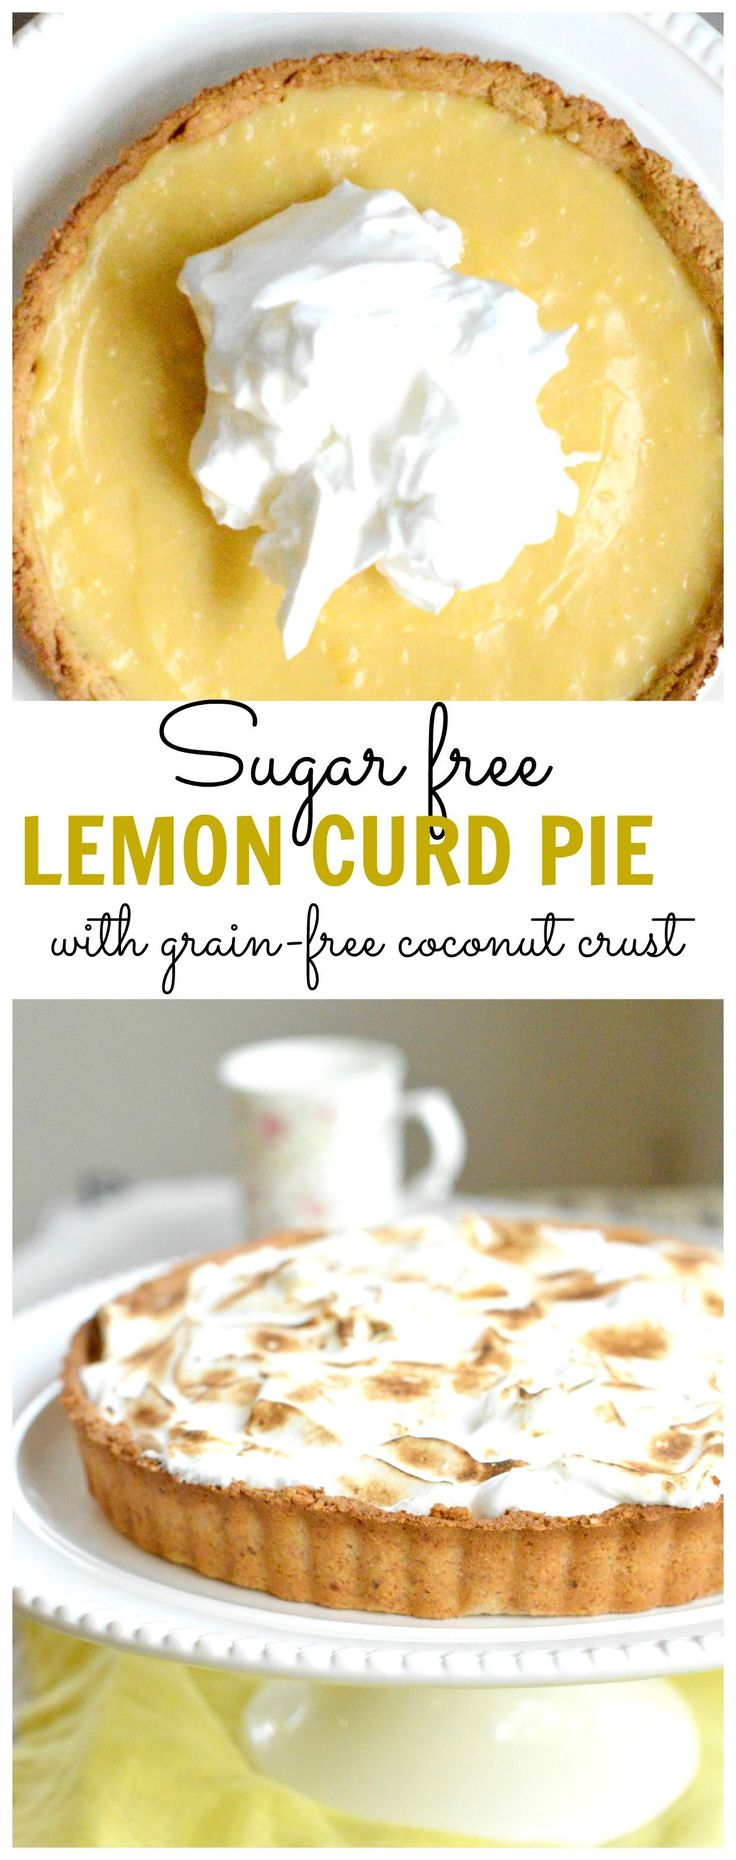 Diabetic dessert dream!!! A Sugar free lemon curd pie with sugar free meringue…